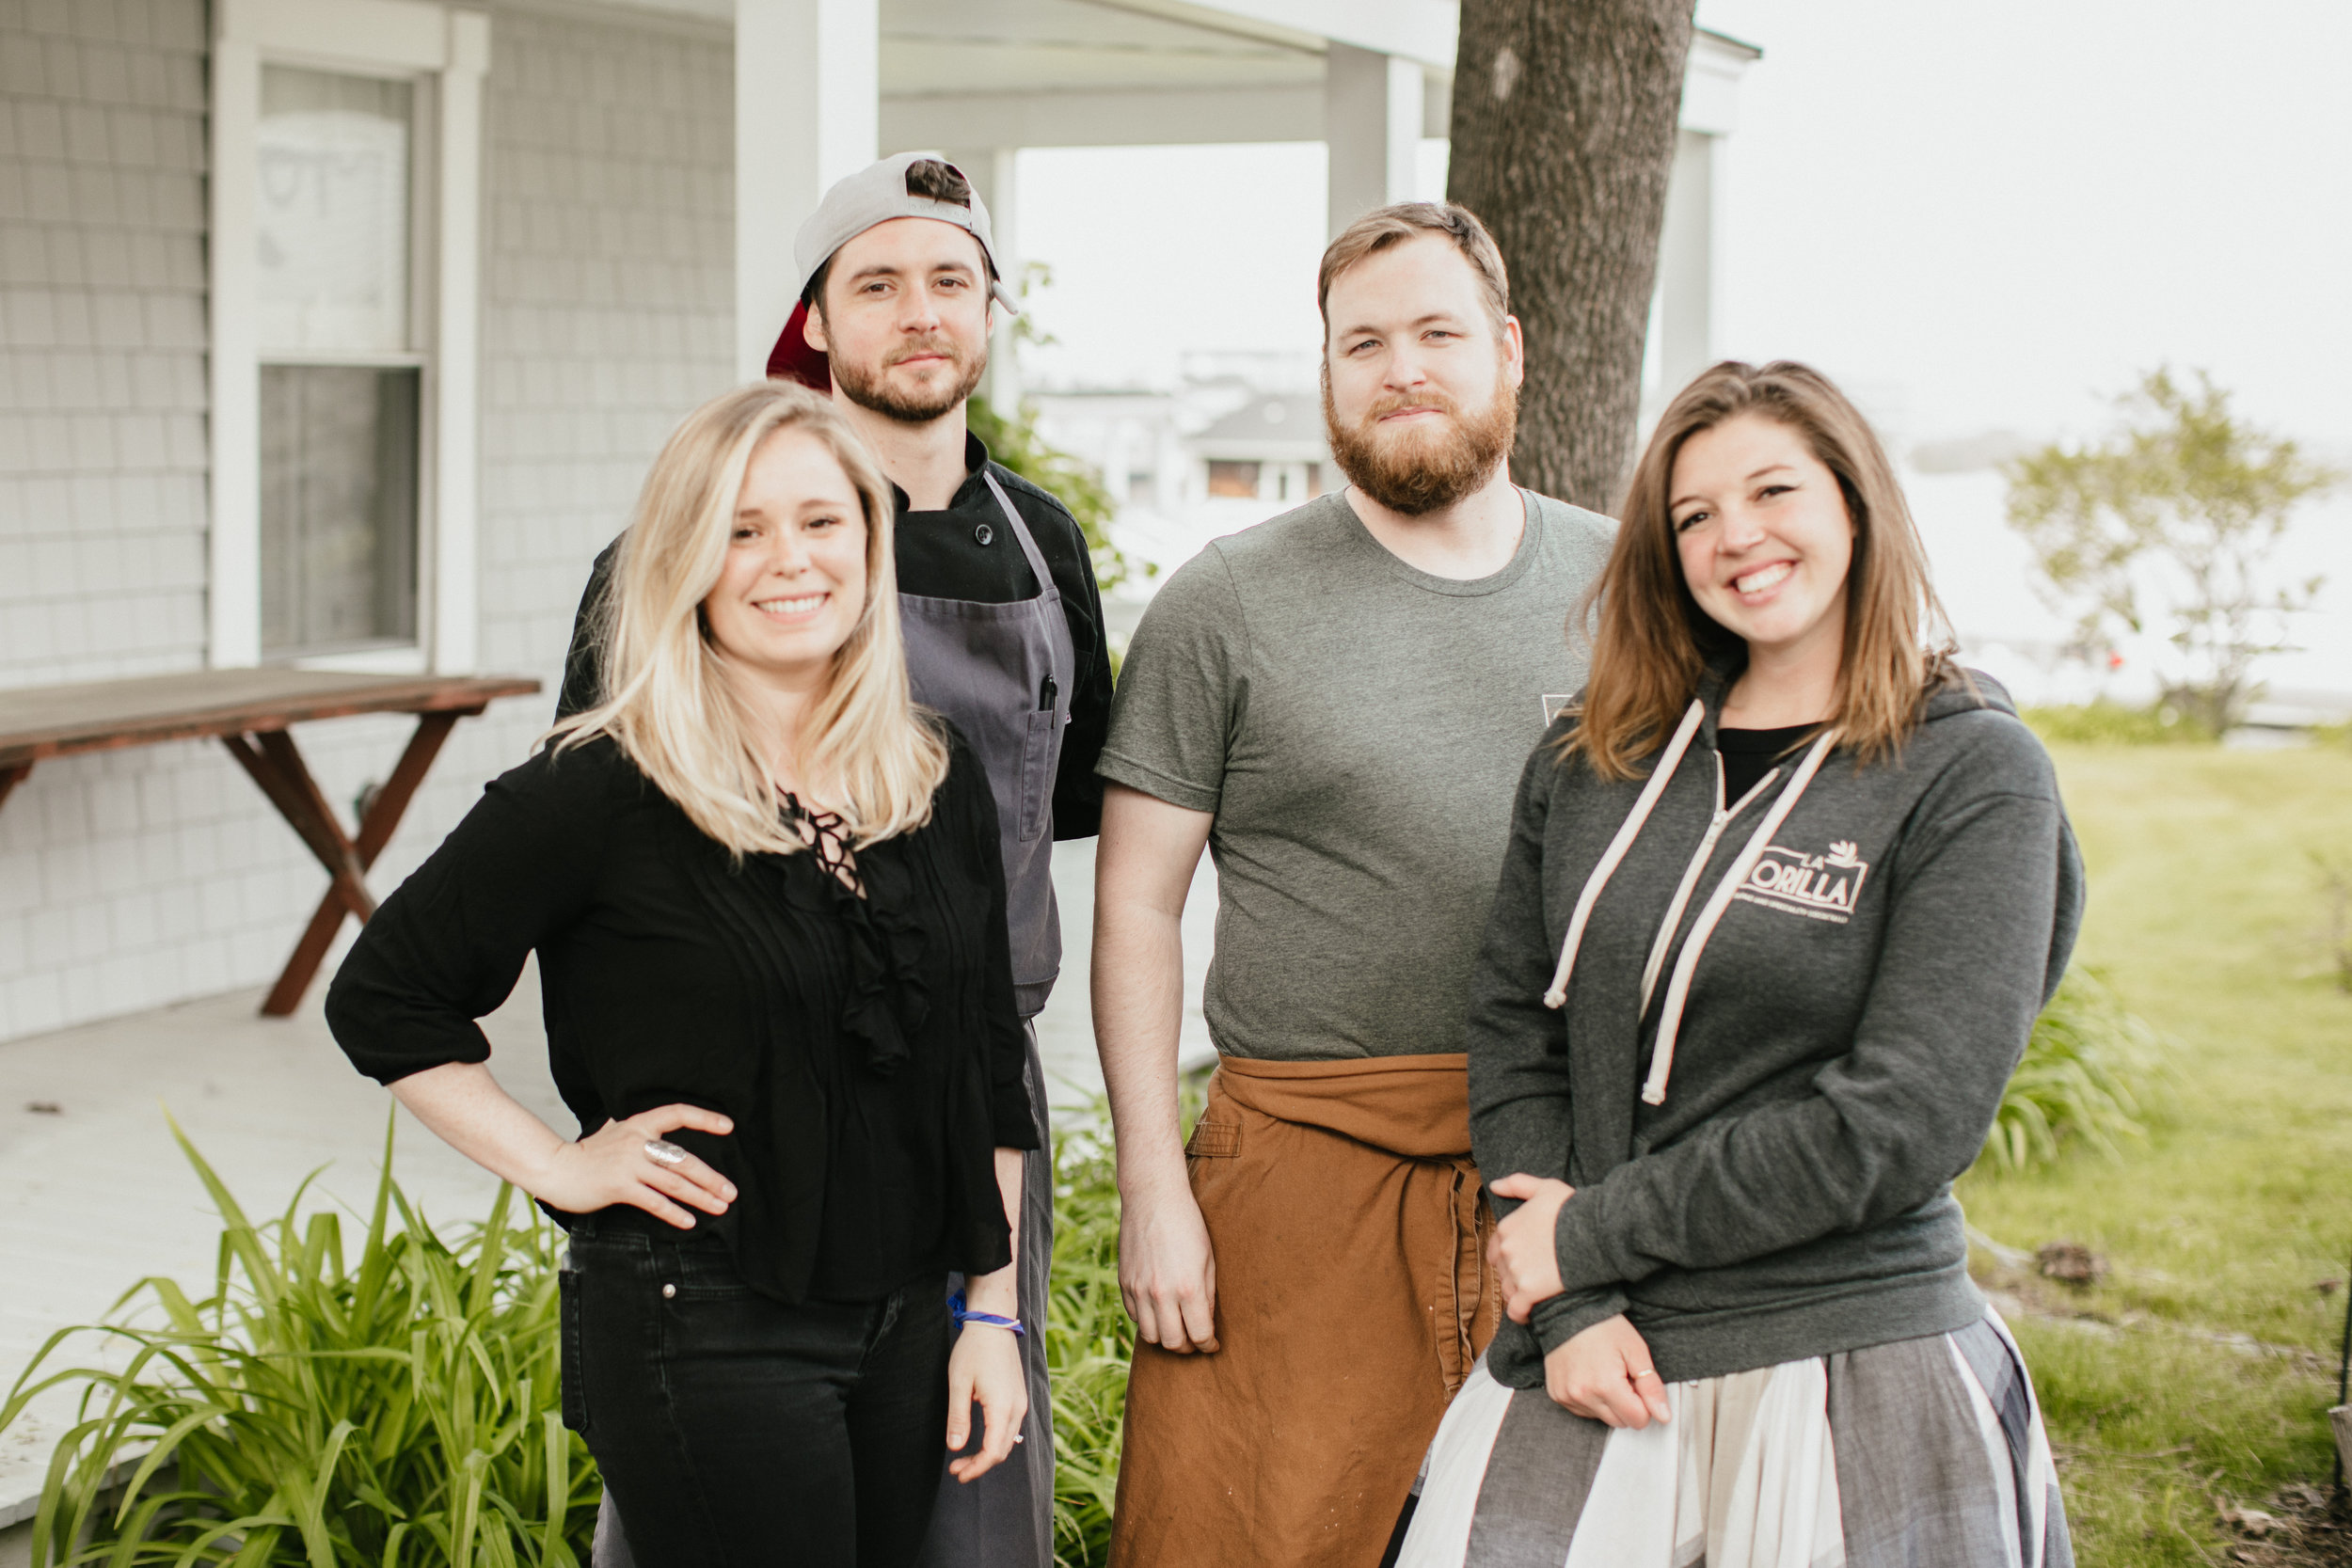 L to R: Karli Stempel, Marketing Coordinator } Matt Haight, Executive Chef | Steve Bolger, Sous Chef | Alex Haight Director of Operations and FOH Manager